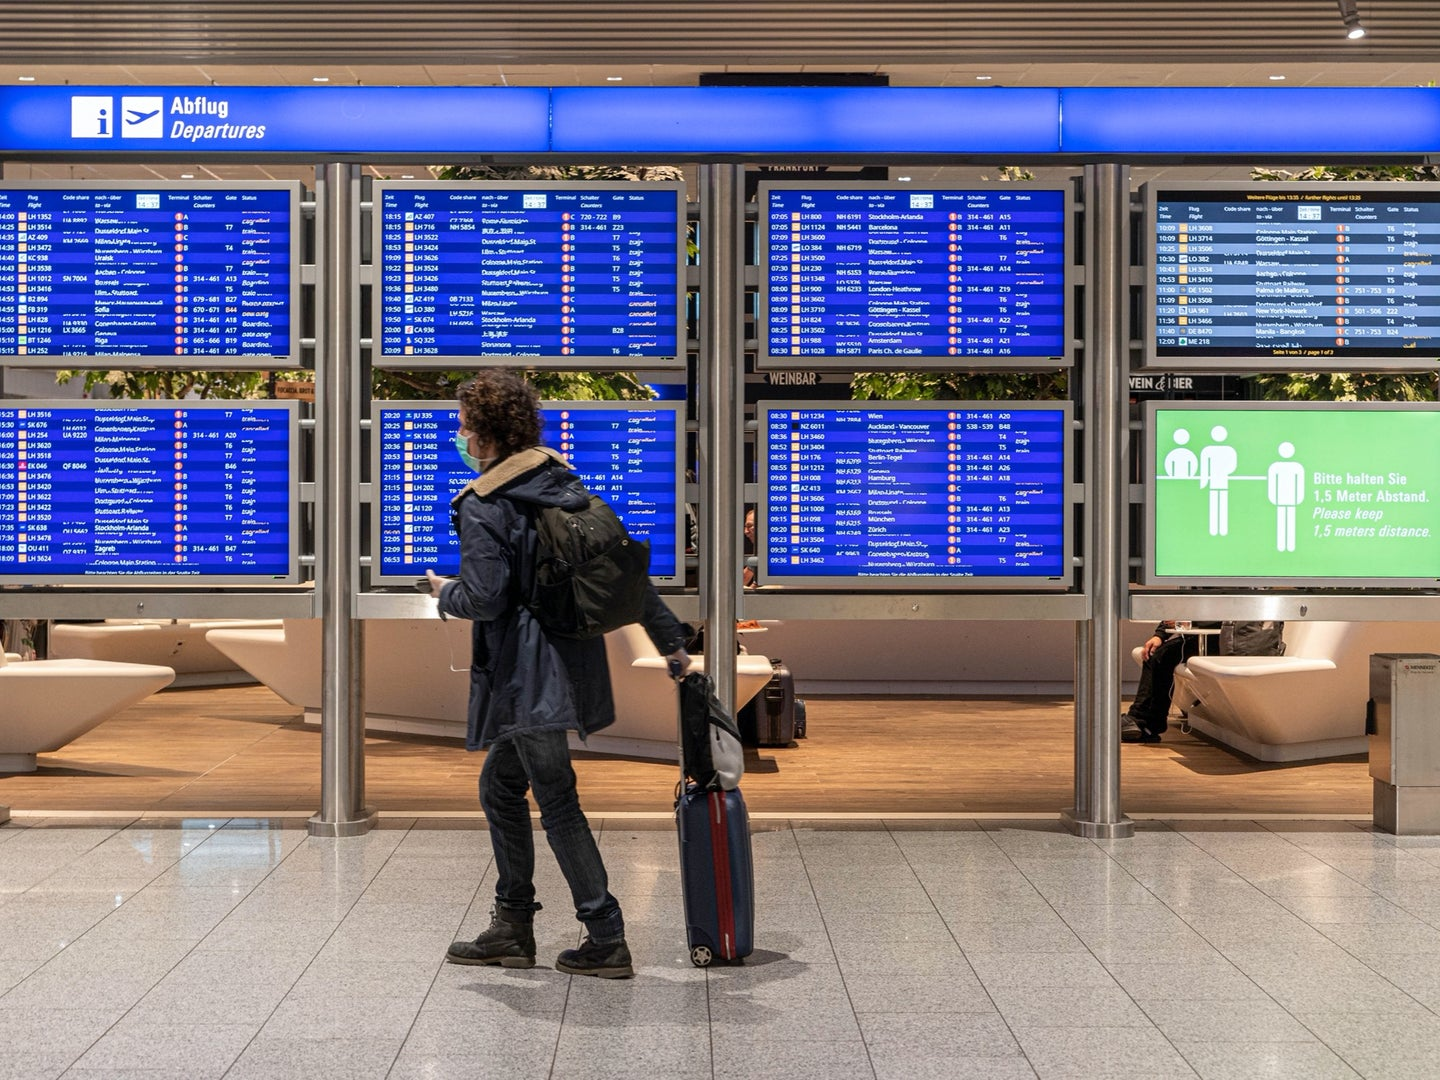 person wearing a mask and looking at the departures board at an airport